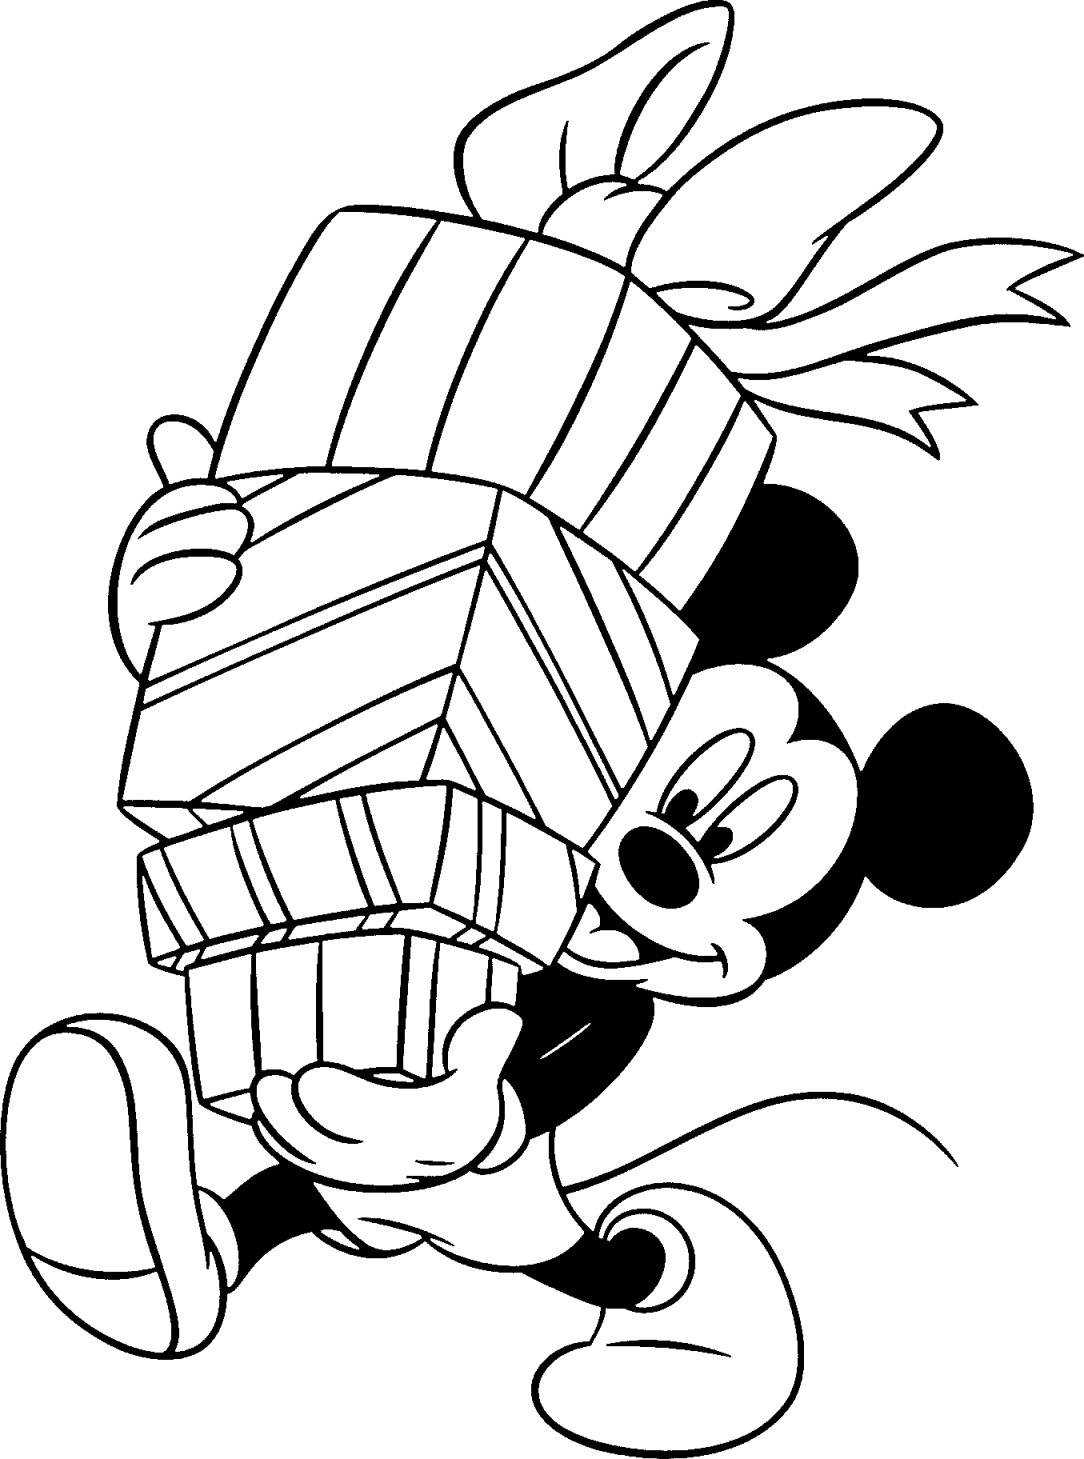 coloring pages disney characters get domain pictures getdomainvids